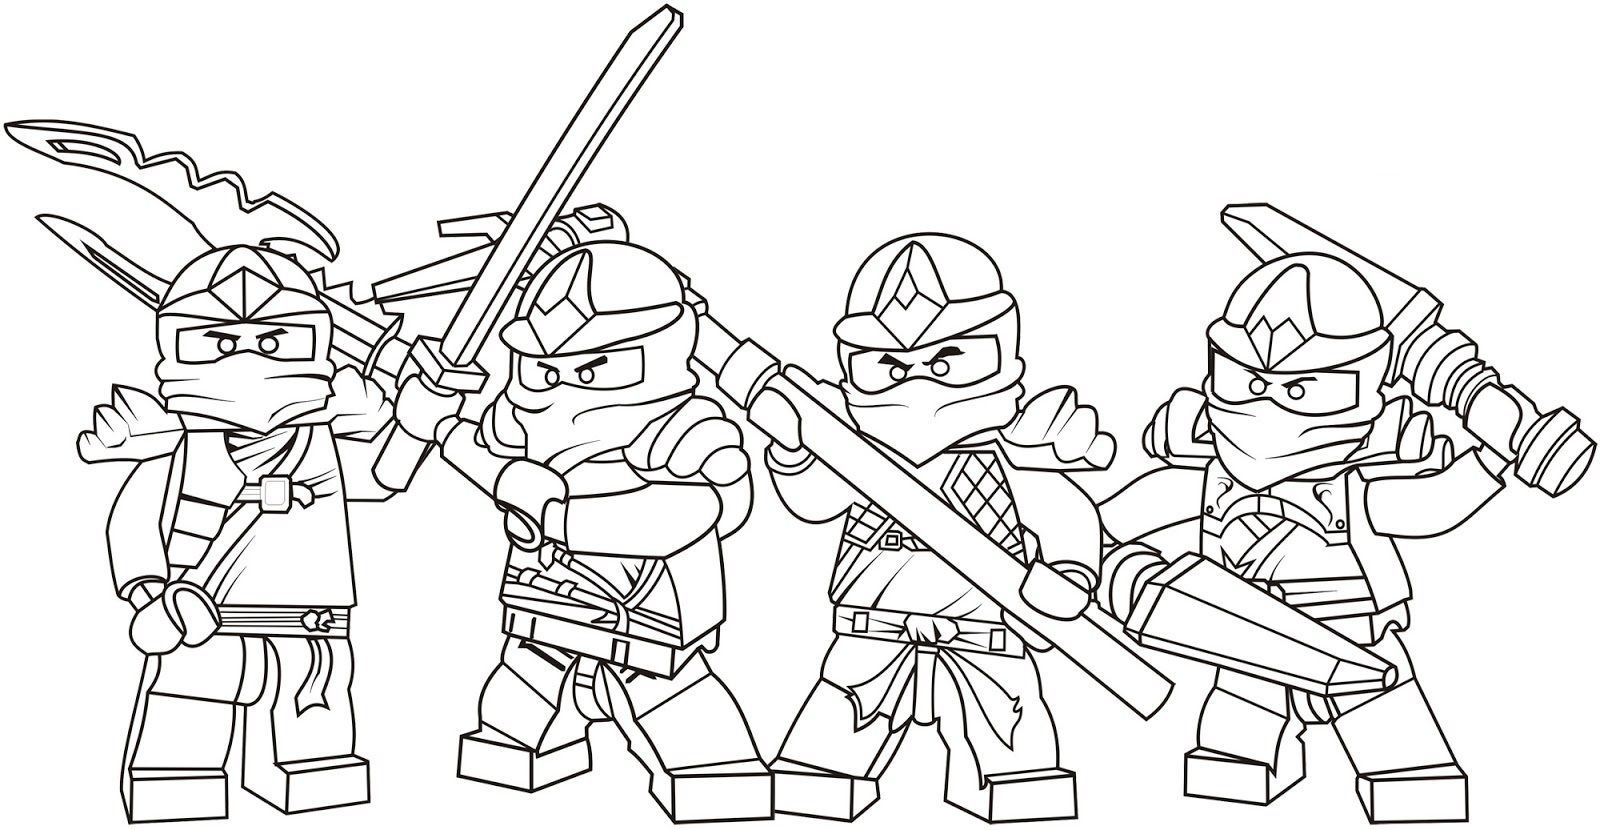 - Free Printable Ninjago Coloring Pages For Kids (With Images